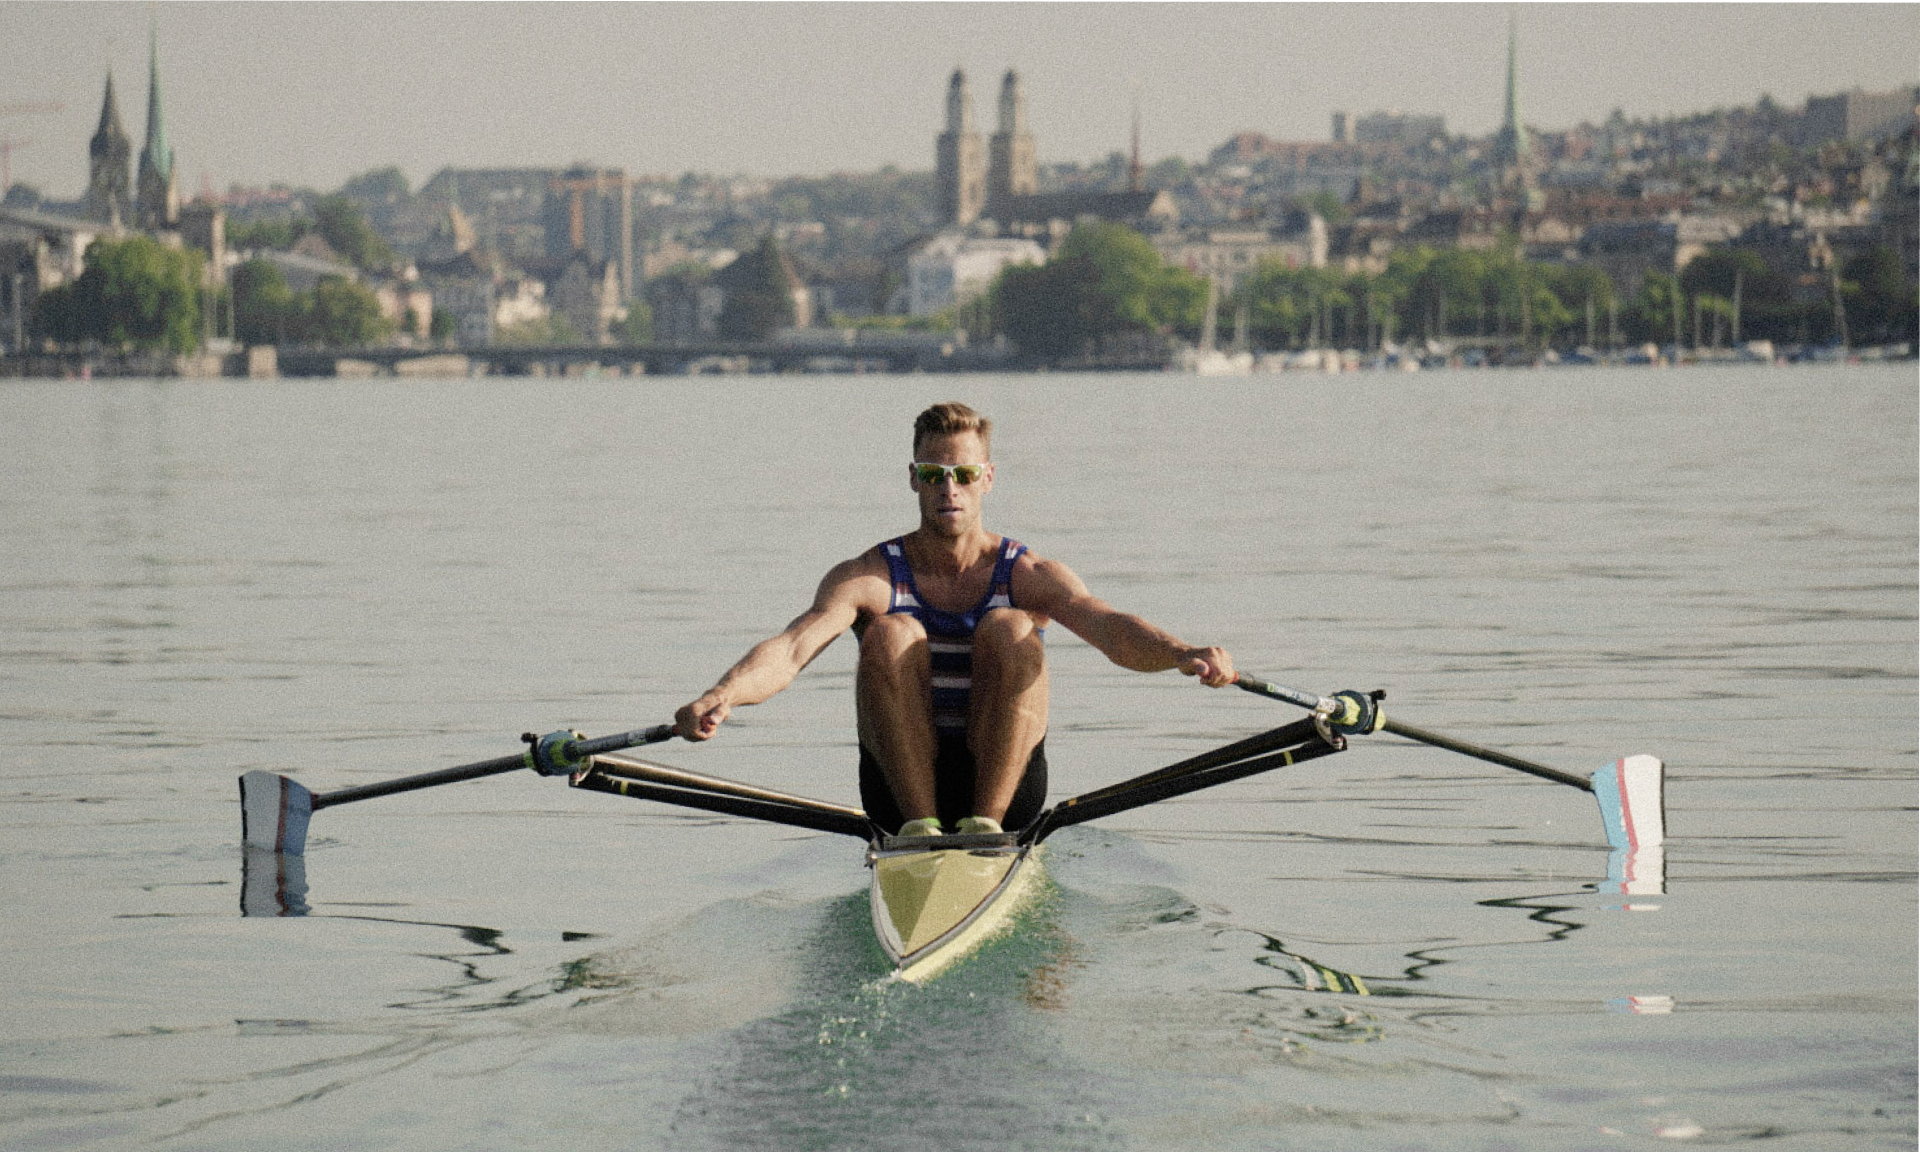 Investment banker by day, athlete by night: How Raymund Bareuther combines job and rowing on a national level